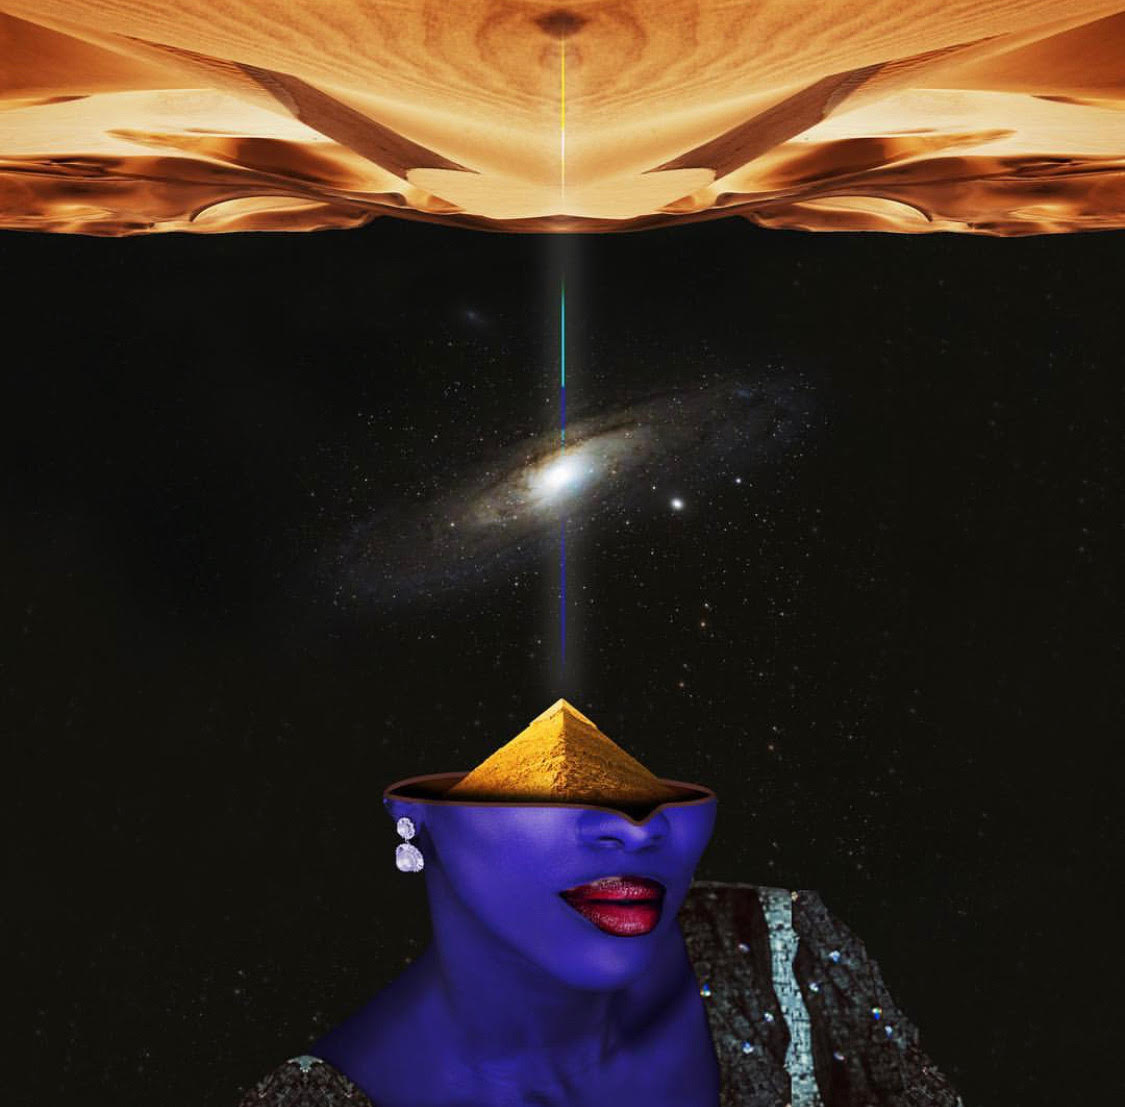 VIBRANIUM - AFRO-FUTURISTIC SOUND .:. BY WOMEN, FOR ALL at Nublu, NYC